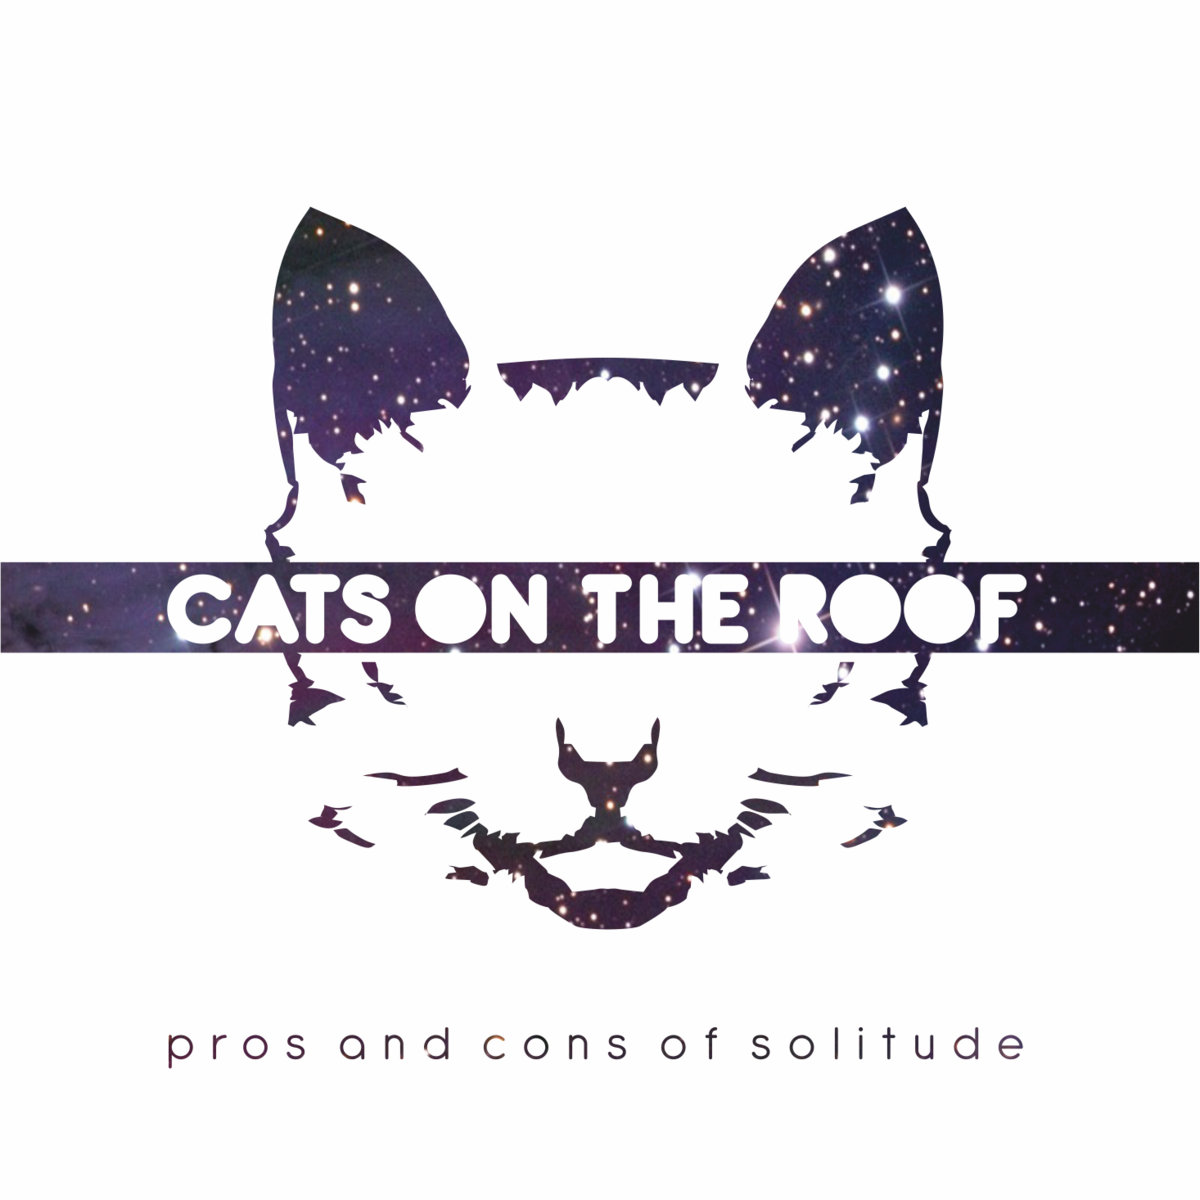 Pros And Cons Of Cats pros and cons of solitude | cats on the roof